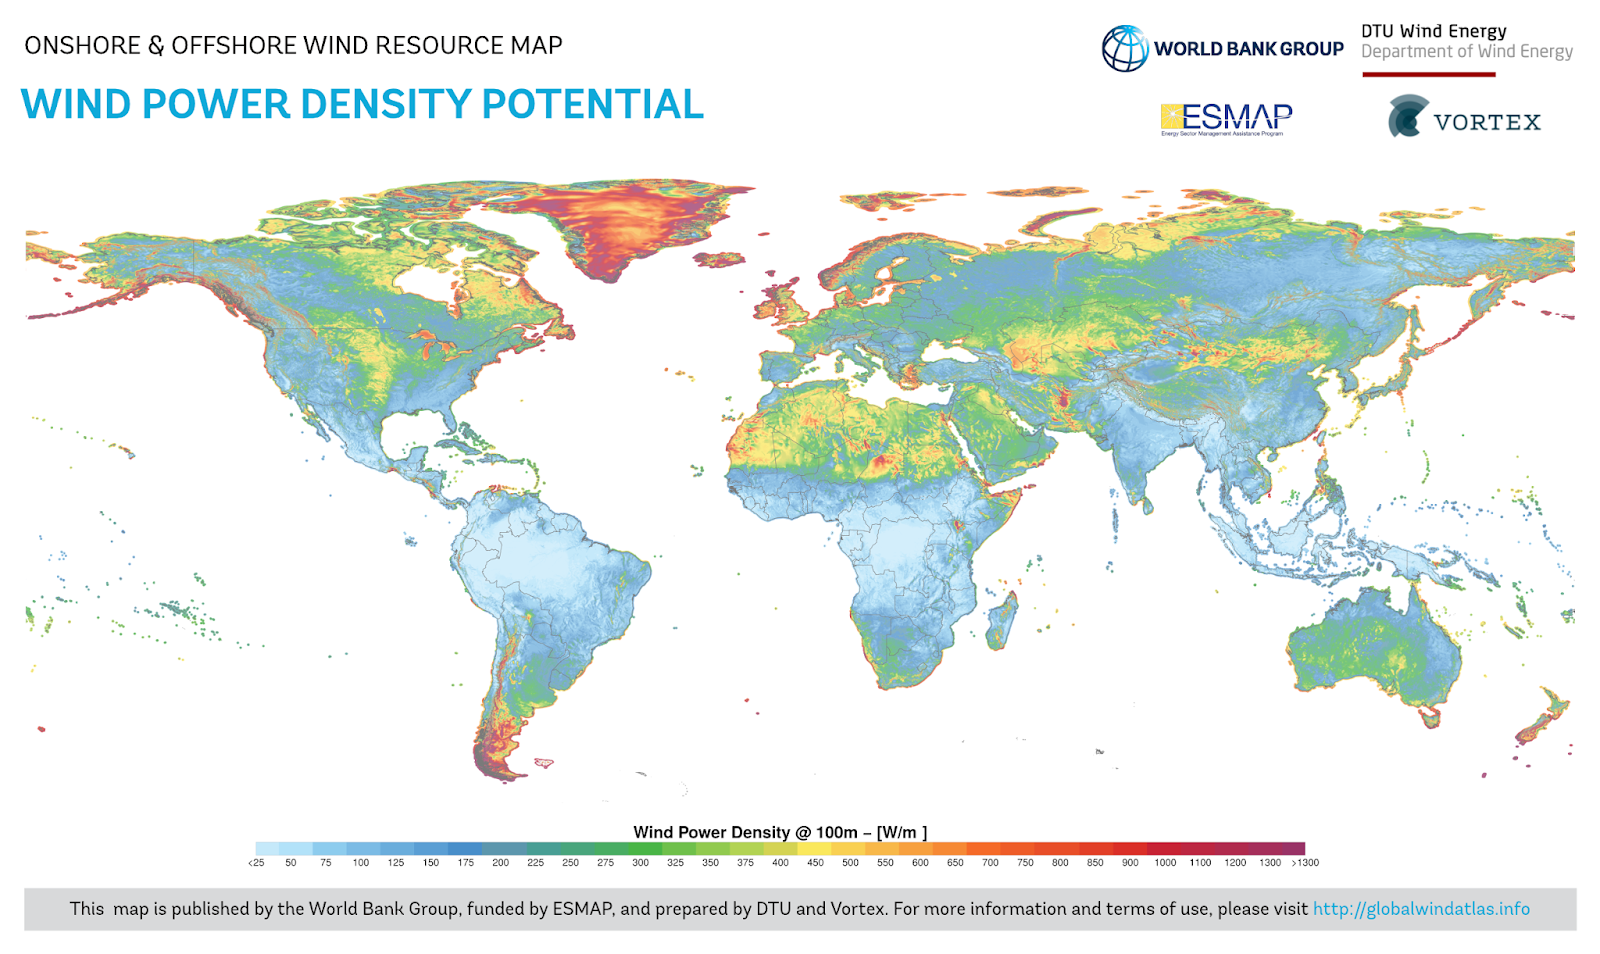 Wind power density potential